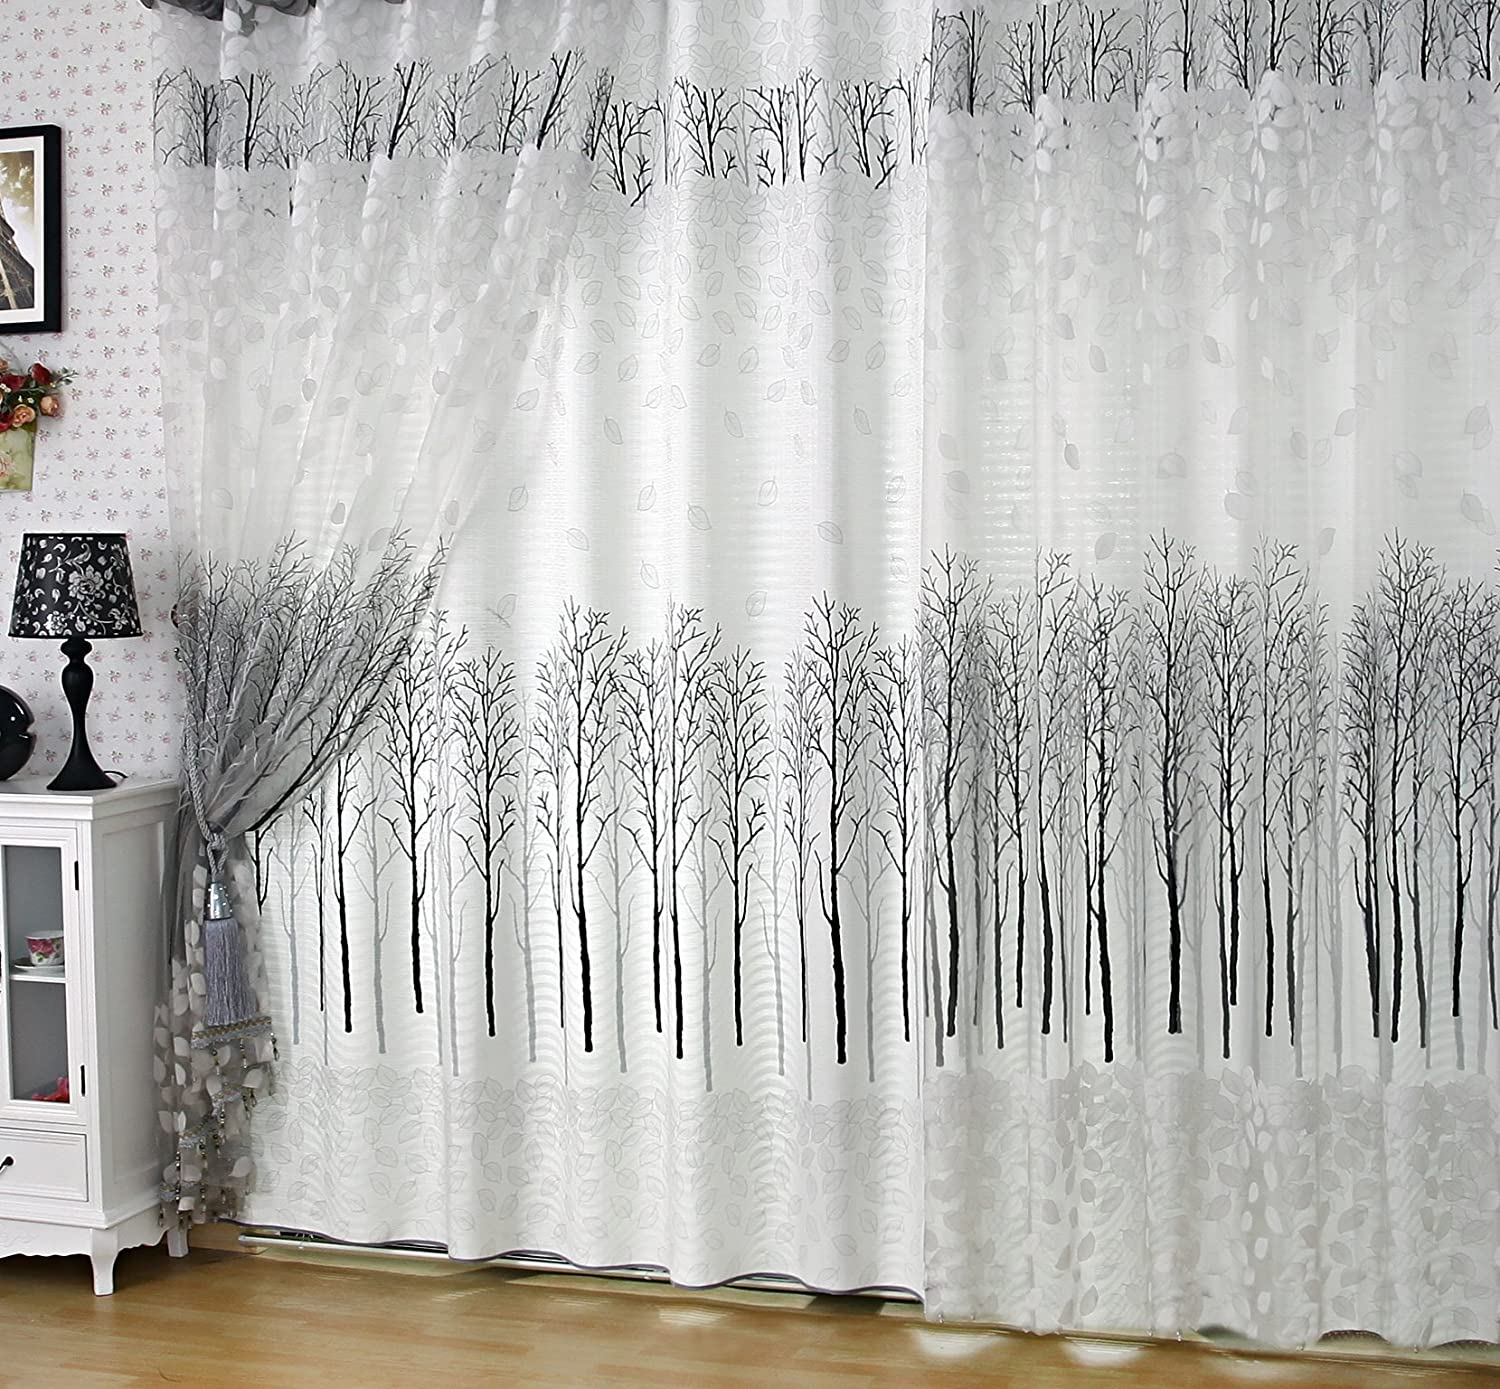 studio drapes blue and backdrops white photo item backgrounds candles black indoor lamp tiles steel wedding drape curtain